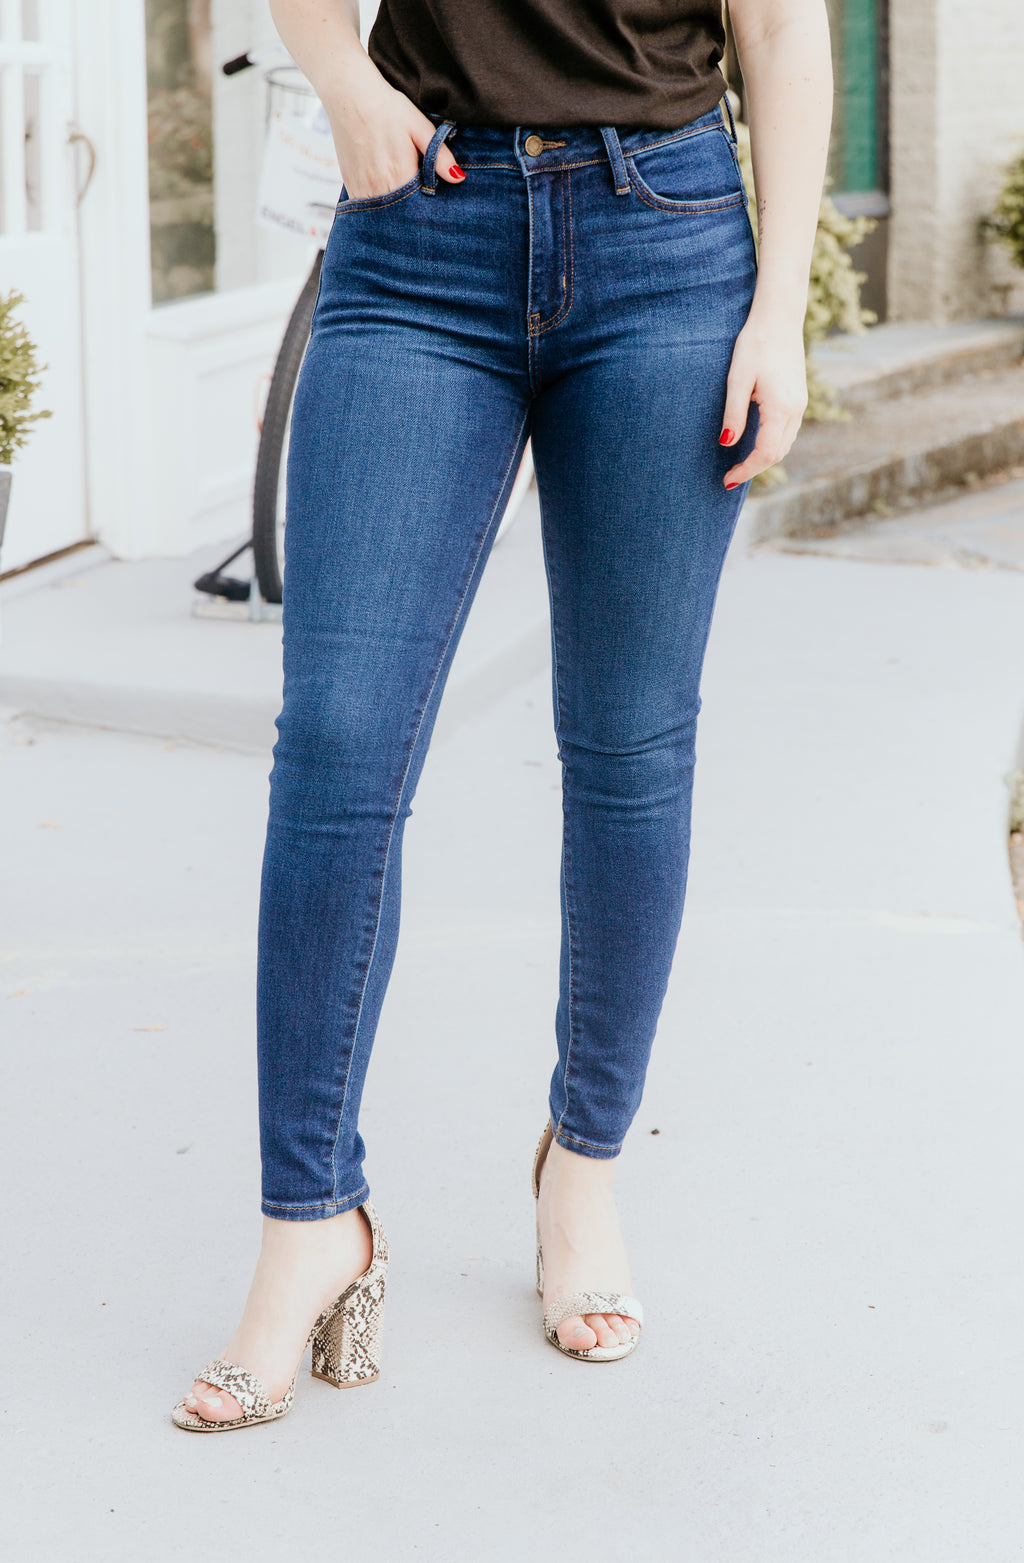 ERIN'S FAVORITE HIGH RISE DENIM IN DARK WASH